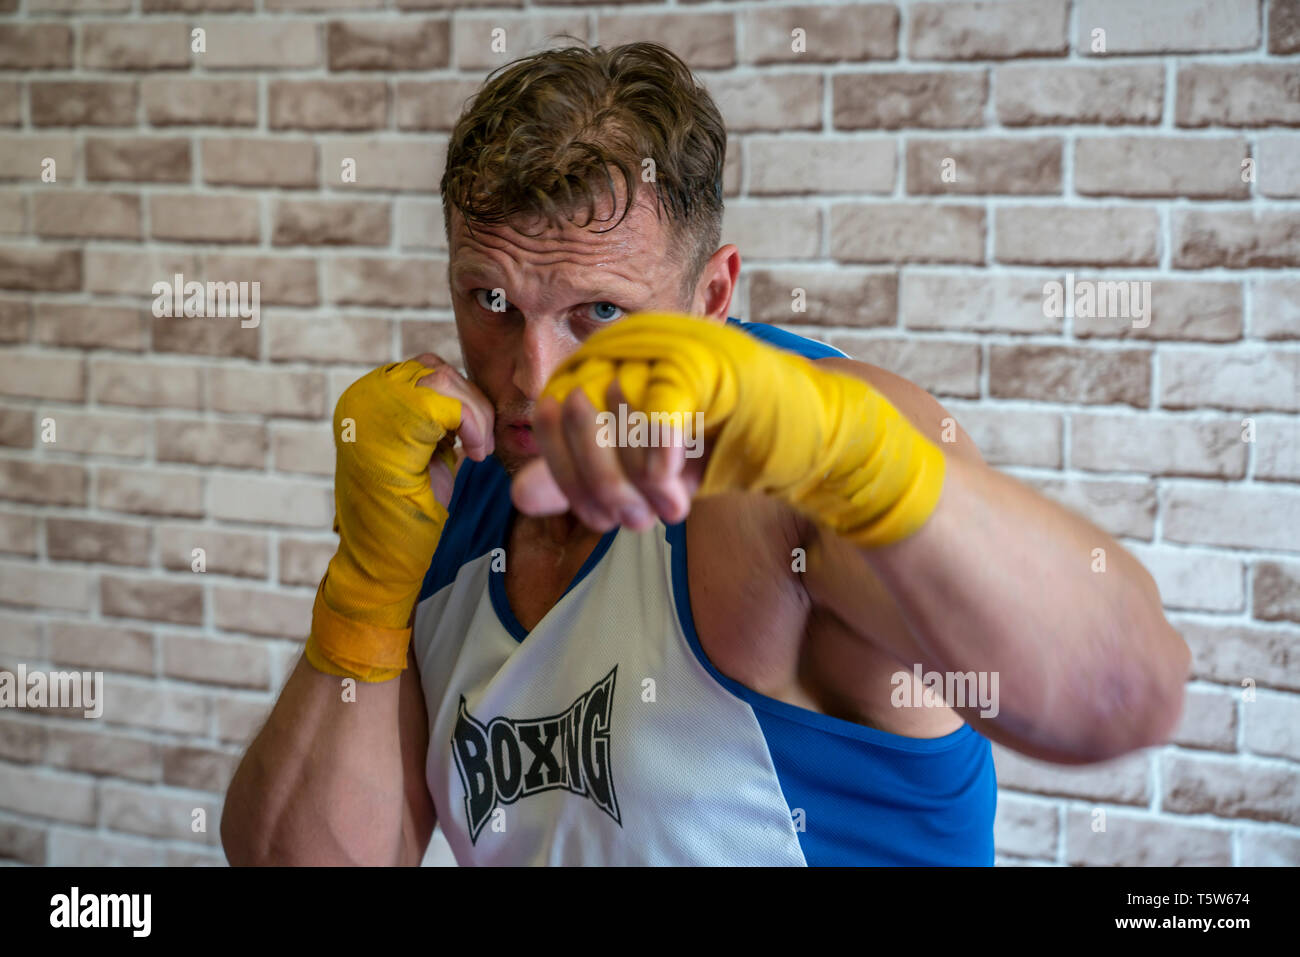 Boxer Boxing with your hands tied bandages on camera - Stock Image